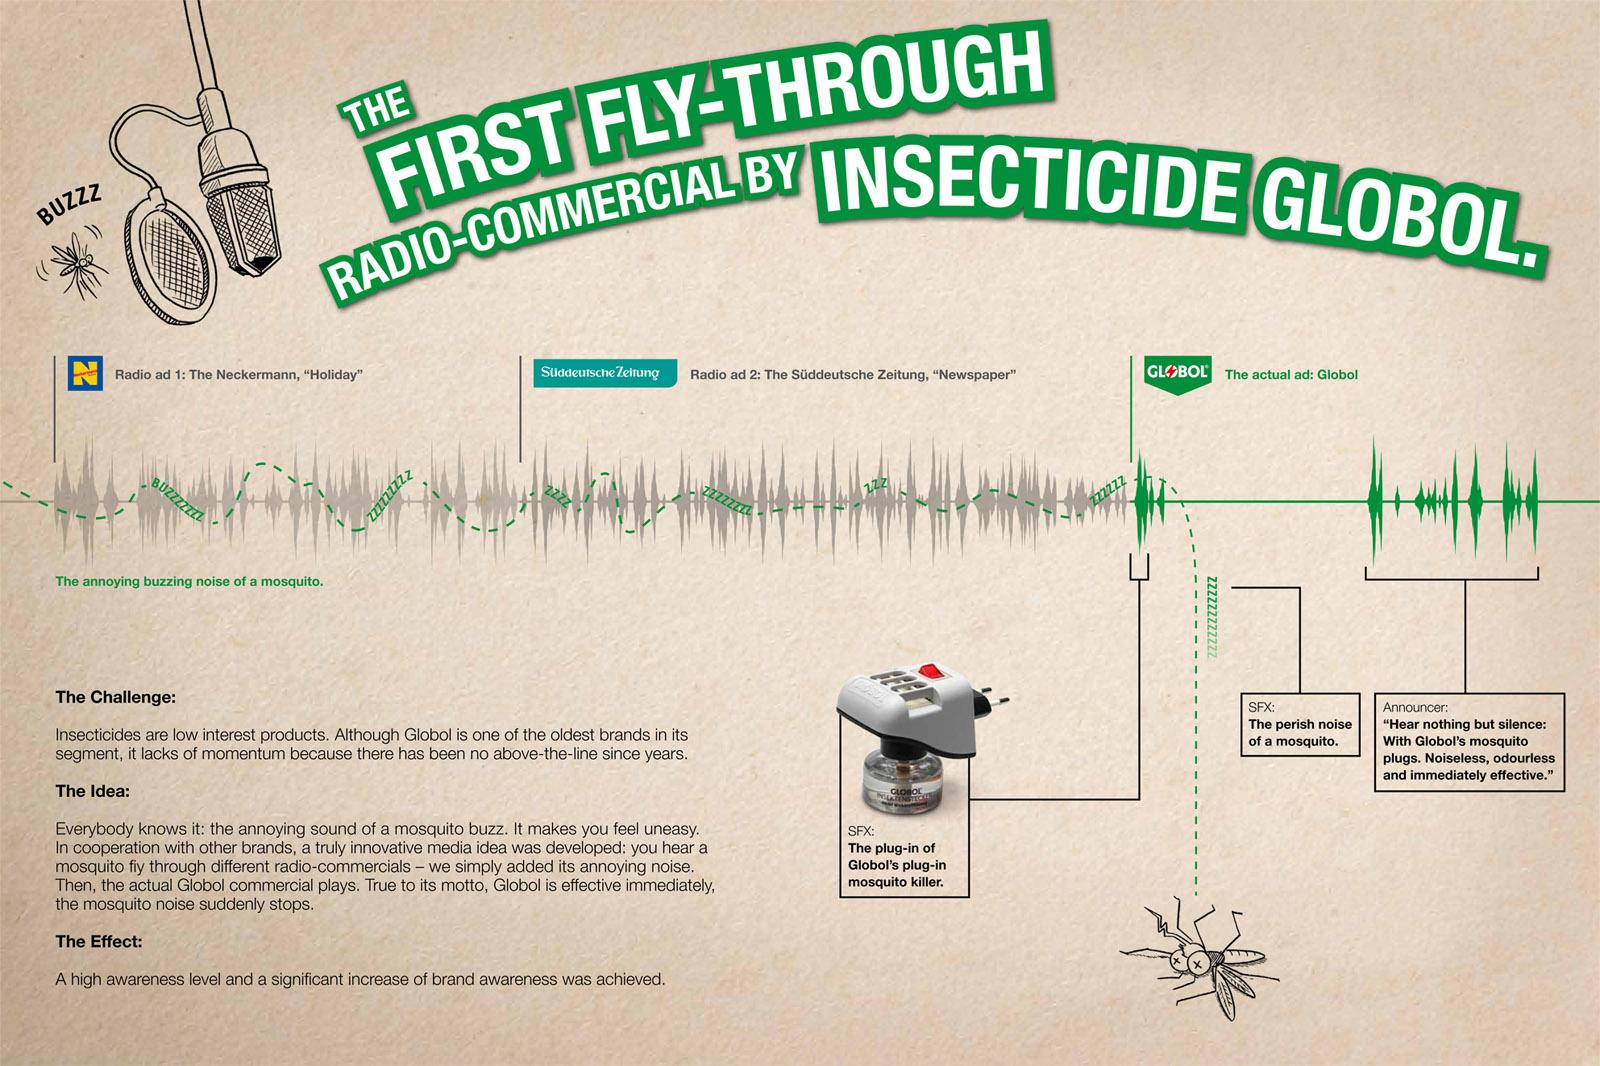 Globol Audio Ad -  The first fly-through radio commercial